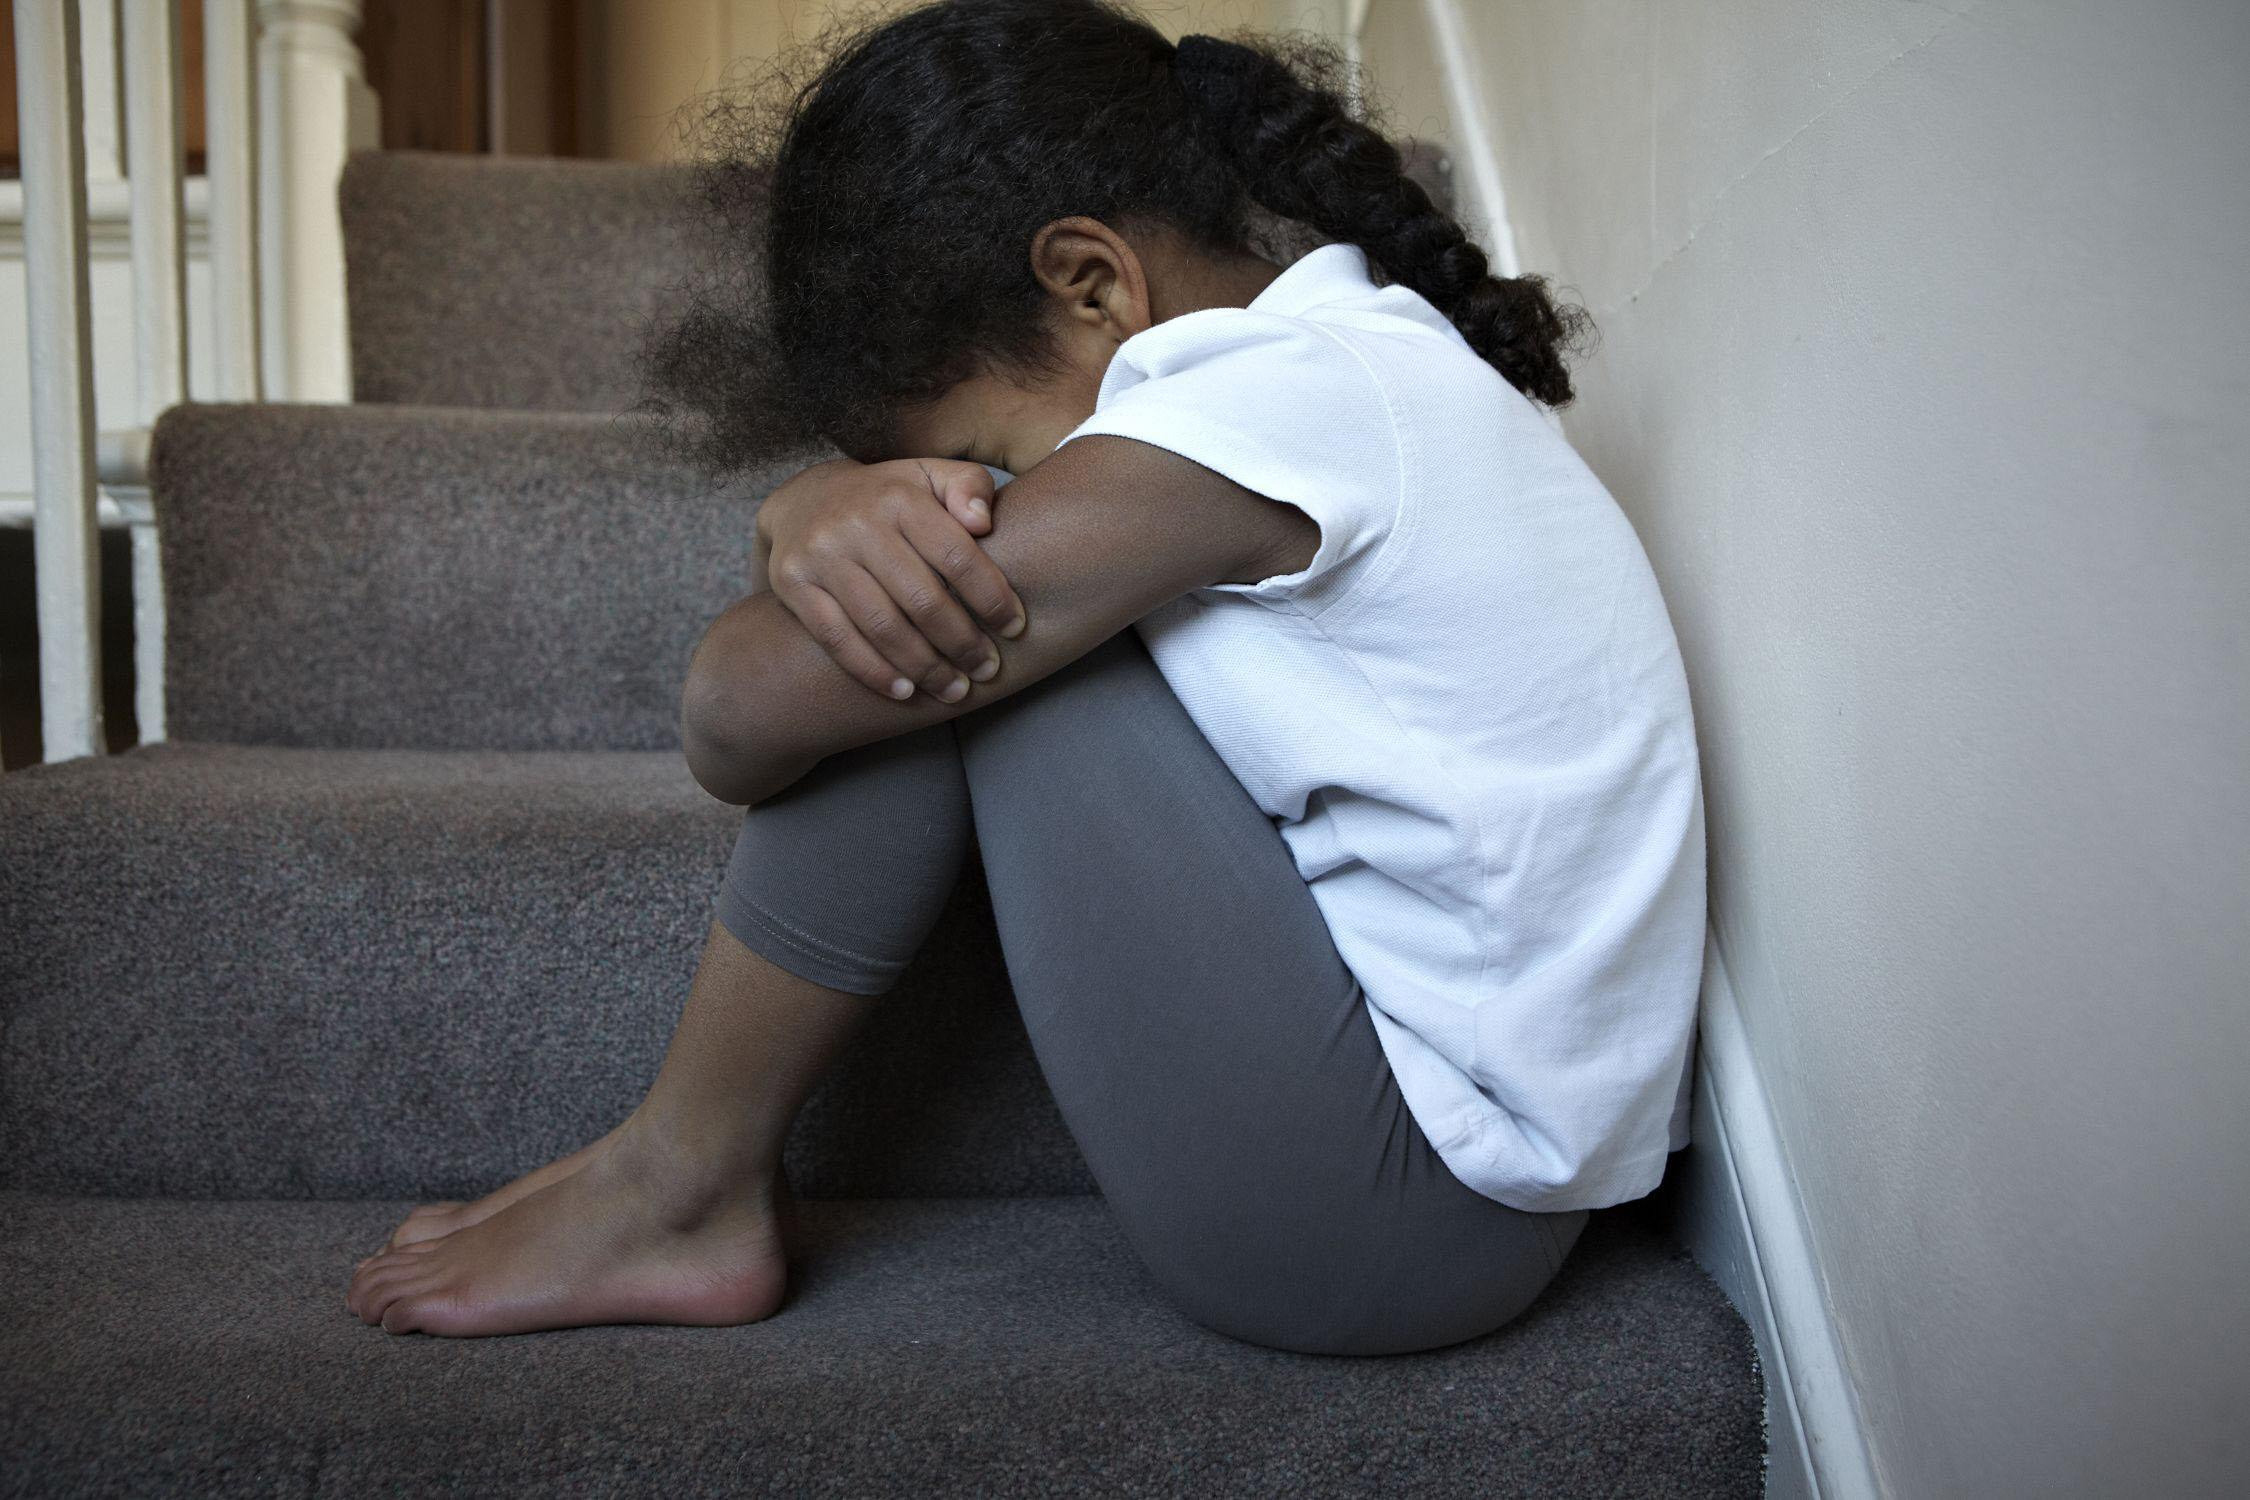 The NSPCC received a record number of calls about child neglect in Swindon last year